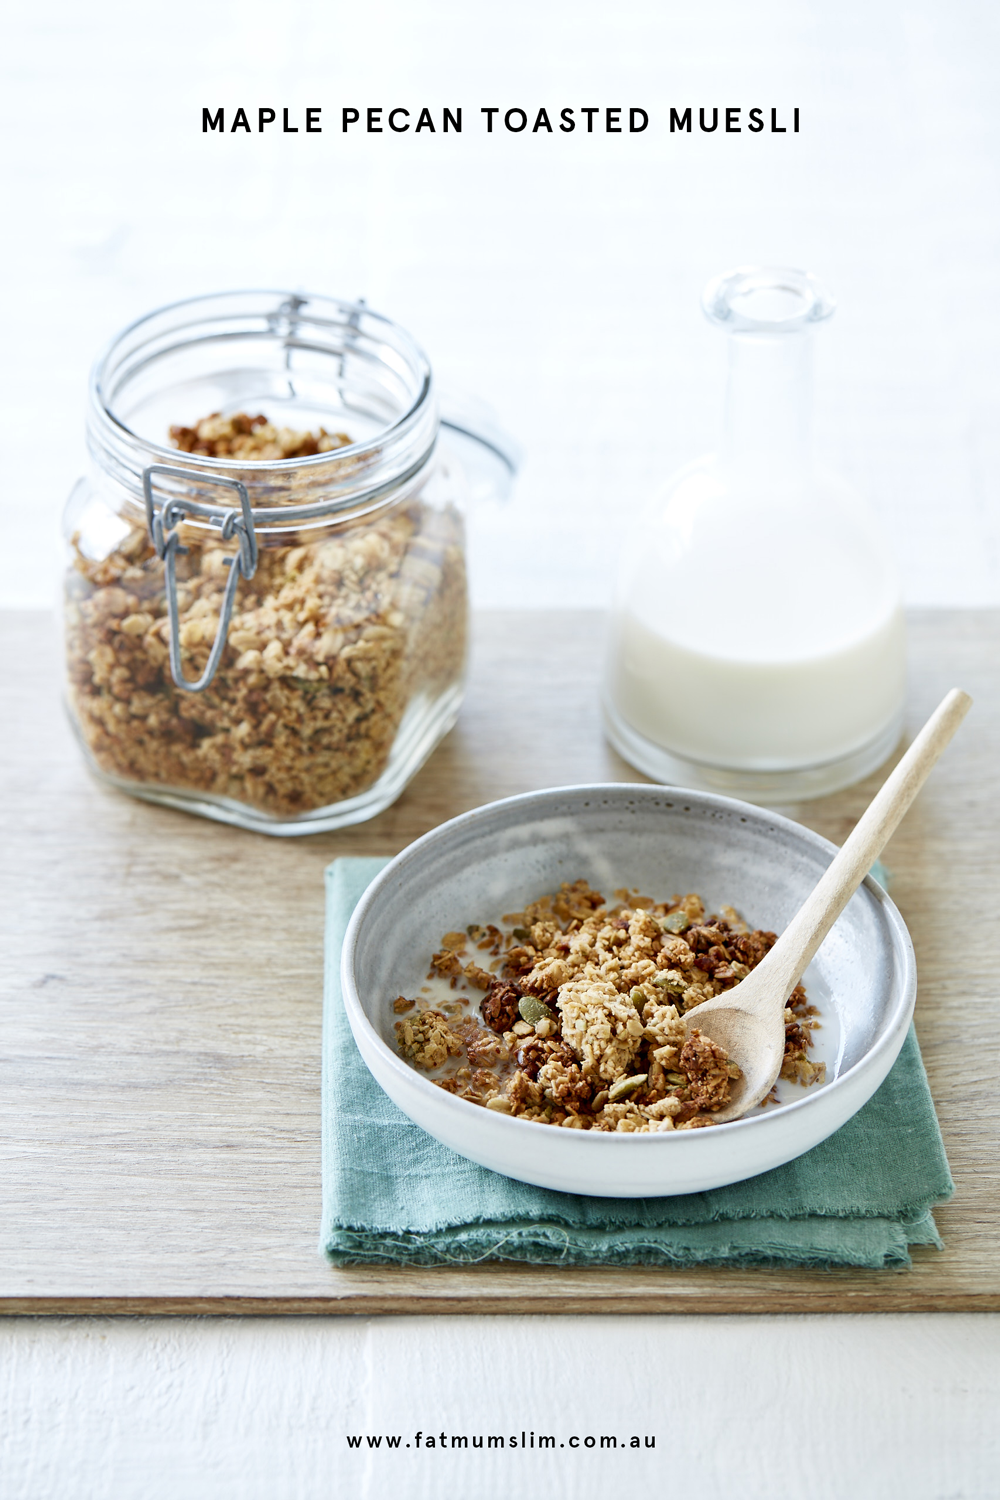 Thermomix Maple Pecan Toasted Muesli Recipe